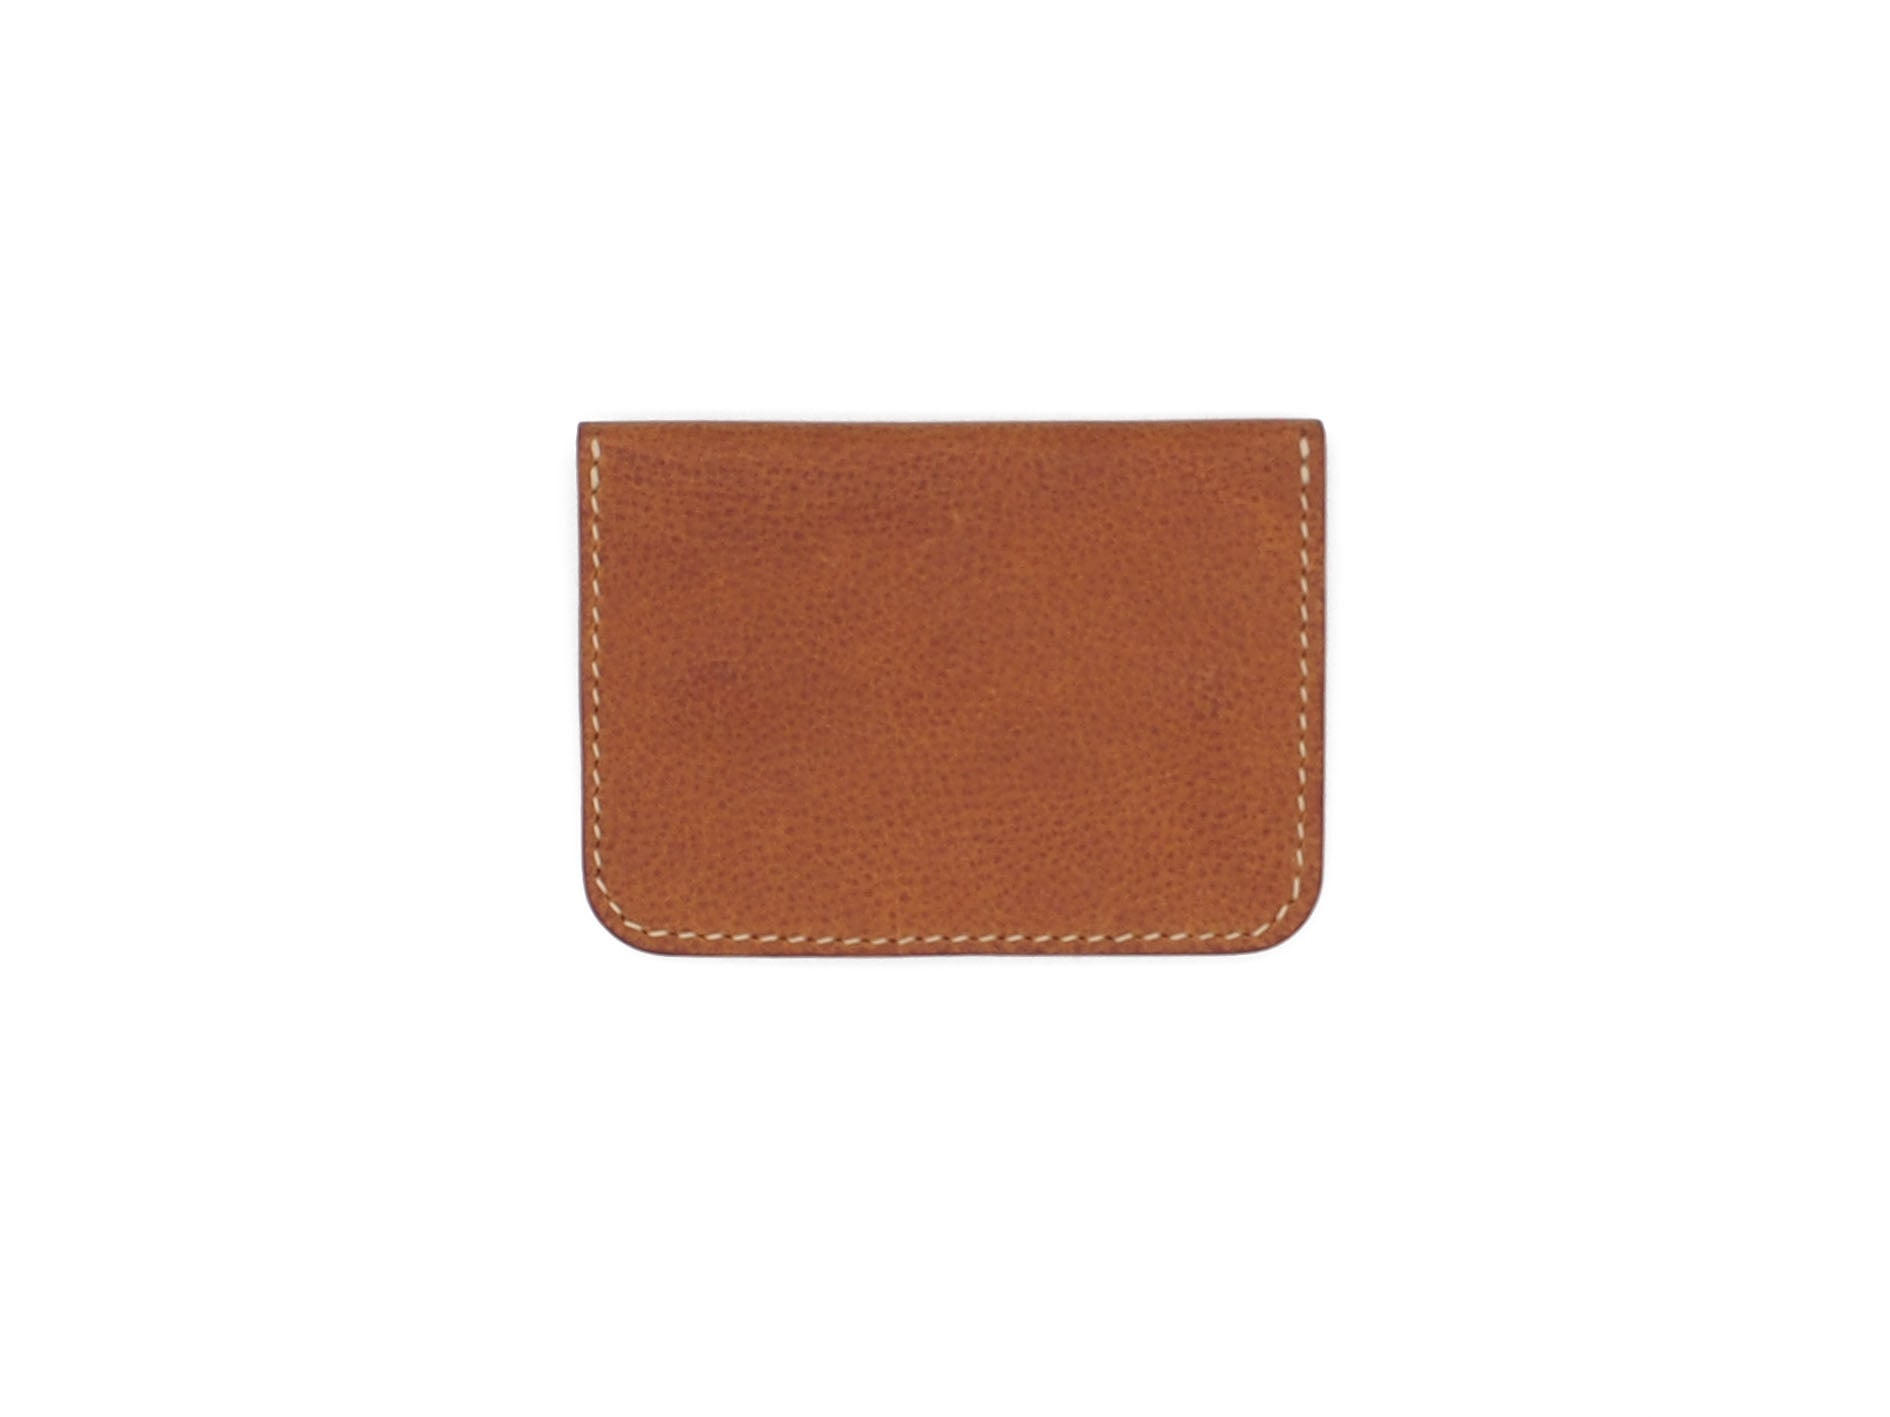 Utility Pocket - Snap Pouch Wallet In Arnia Rustico